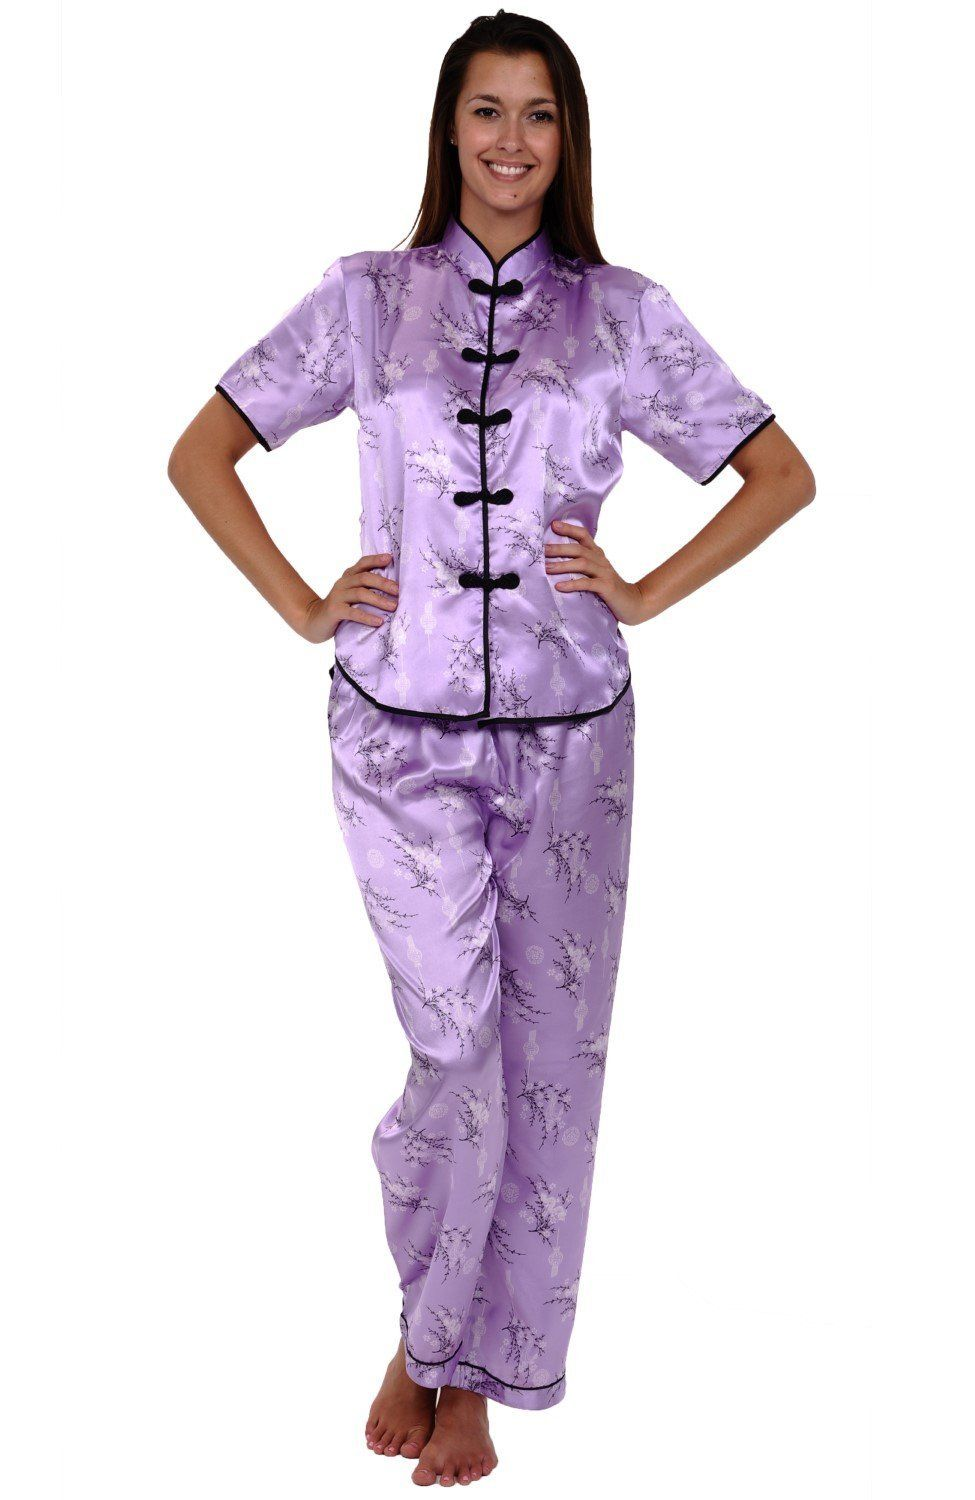 dabb43ee0 Del Rossa Women's Satin Pajamas, Chinese Inspired Pj Set ** This is an  Amazon Affiliate link. Details can be found by clicking on the image.